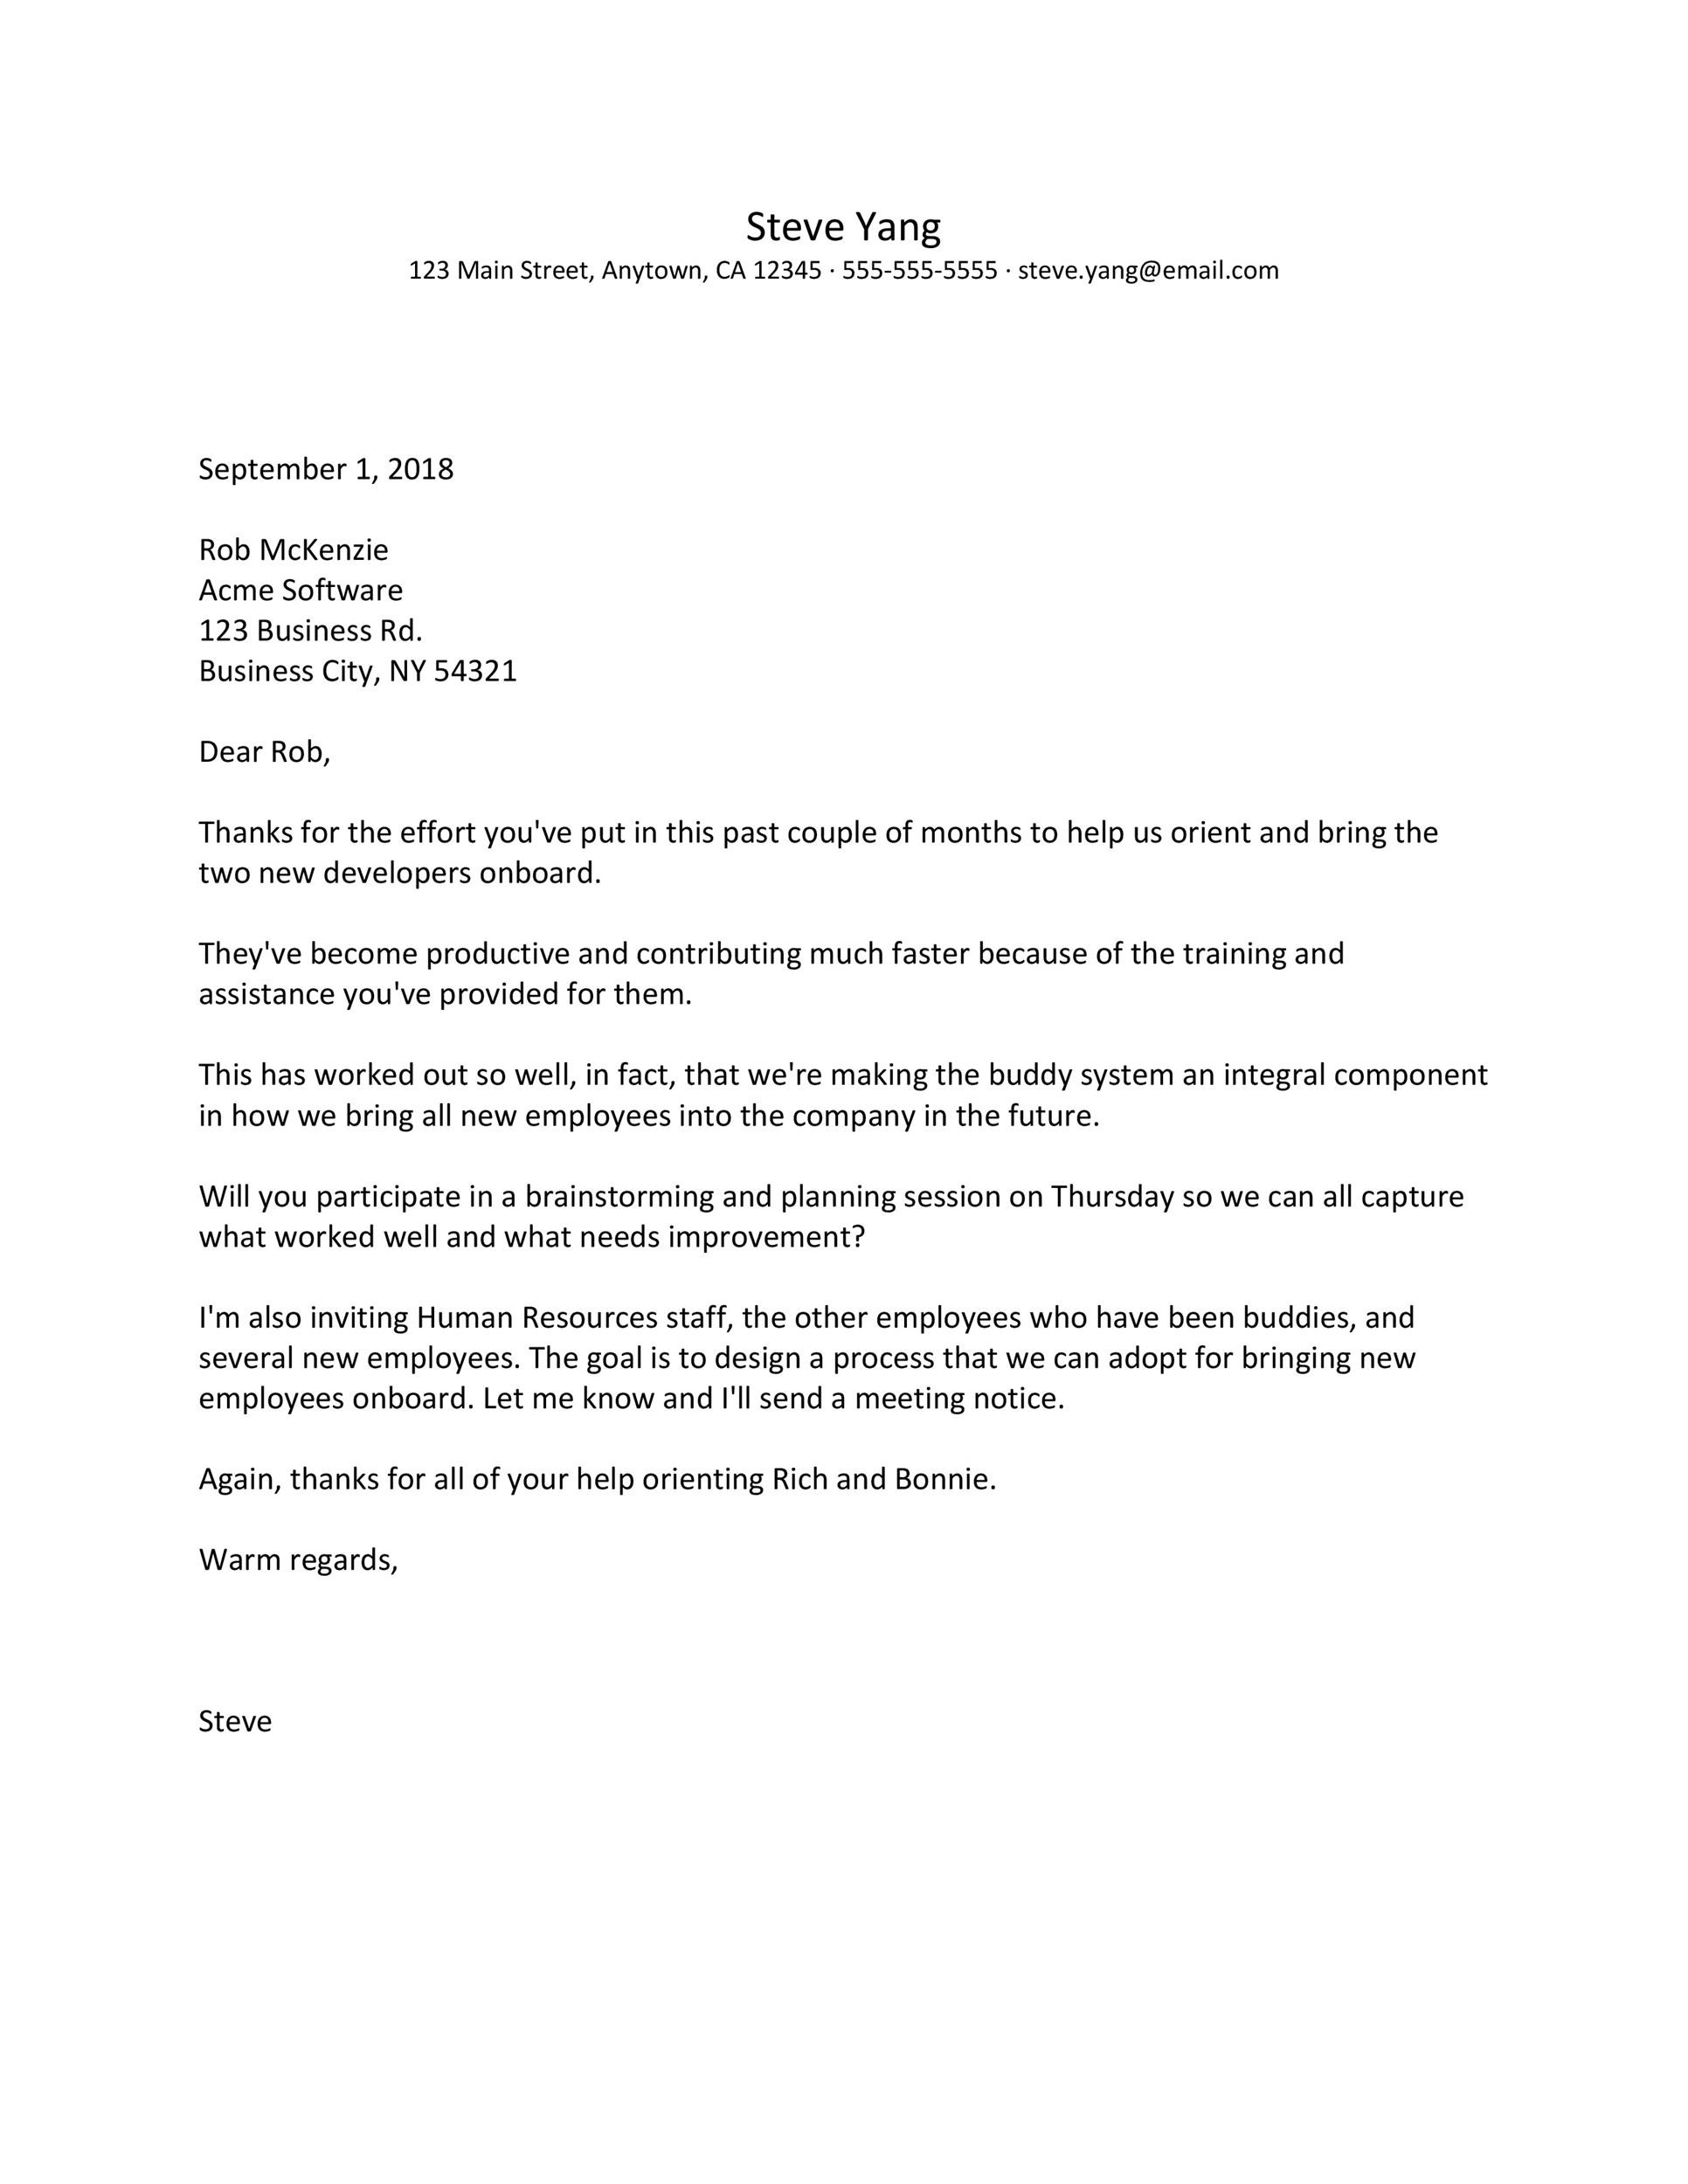 Free recognition letter 04